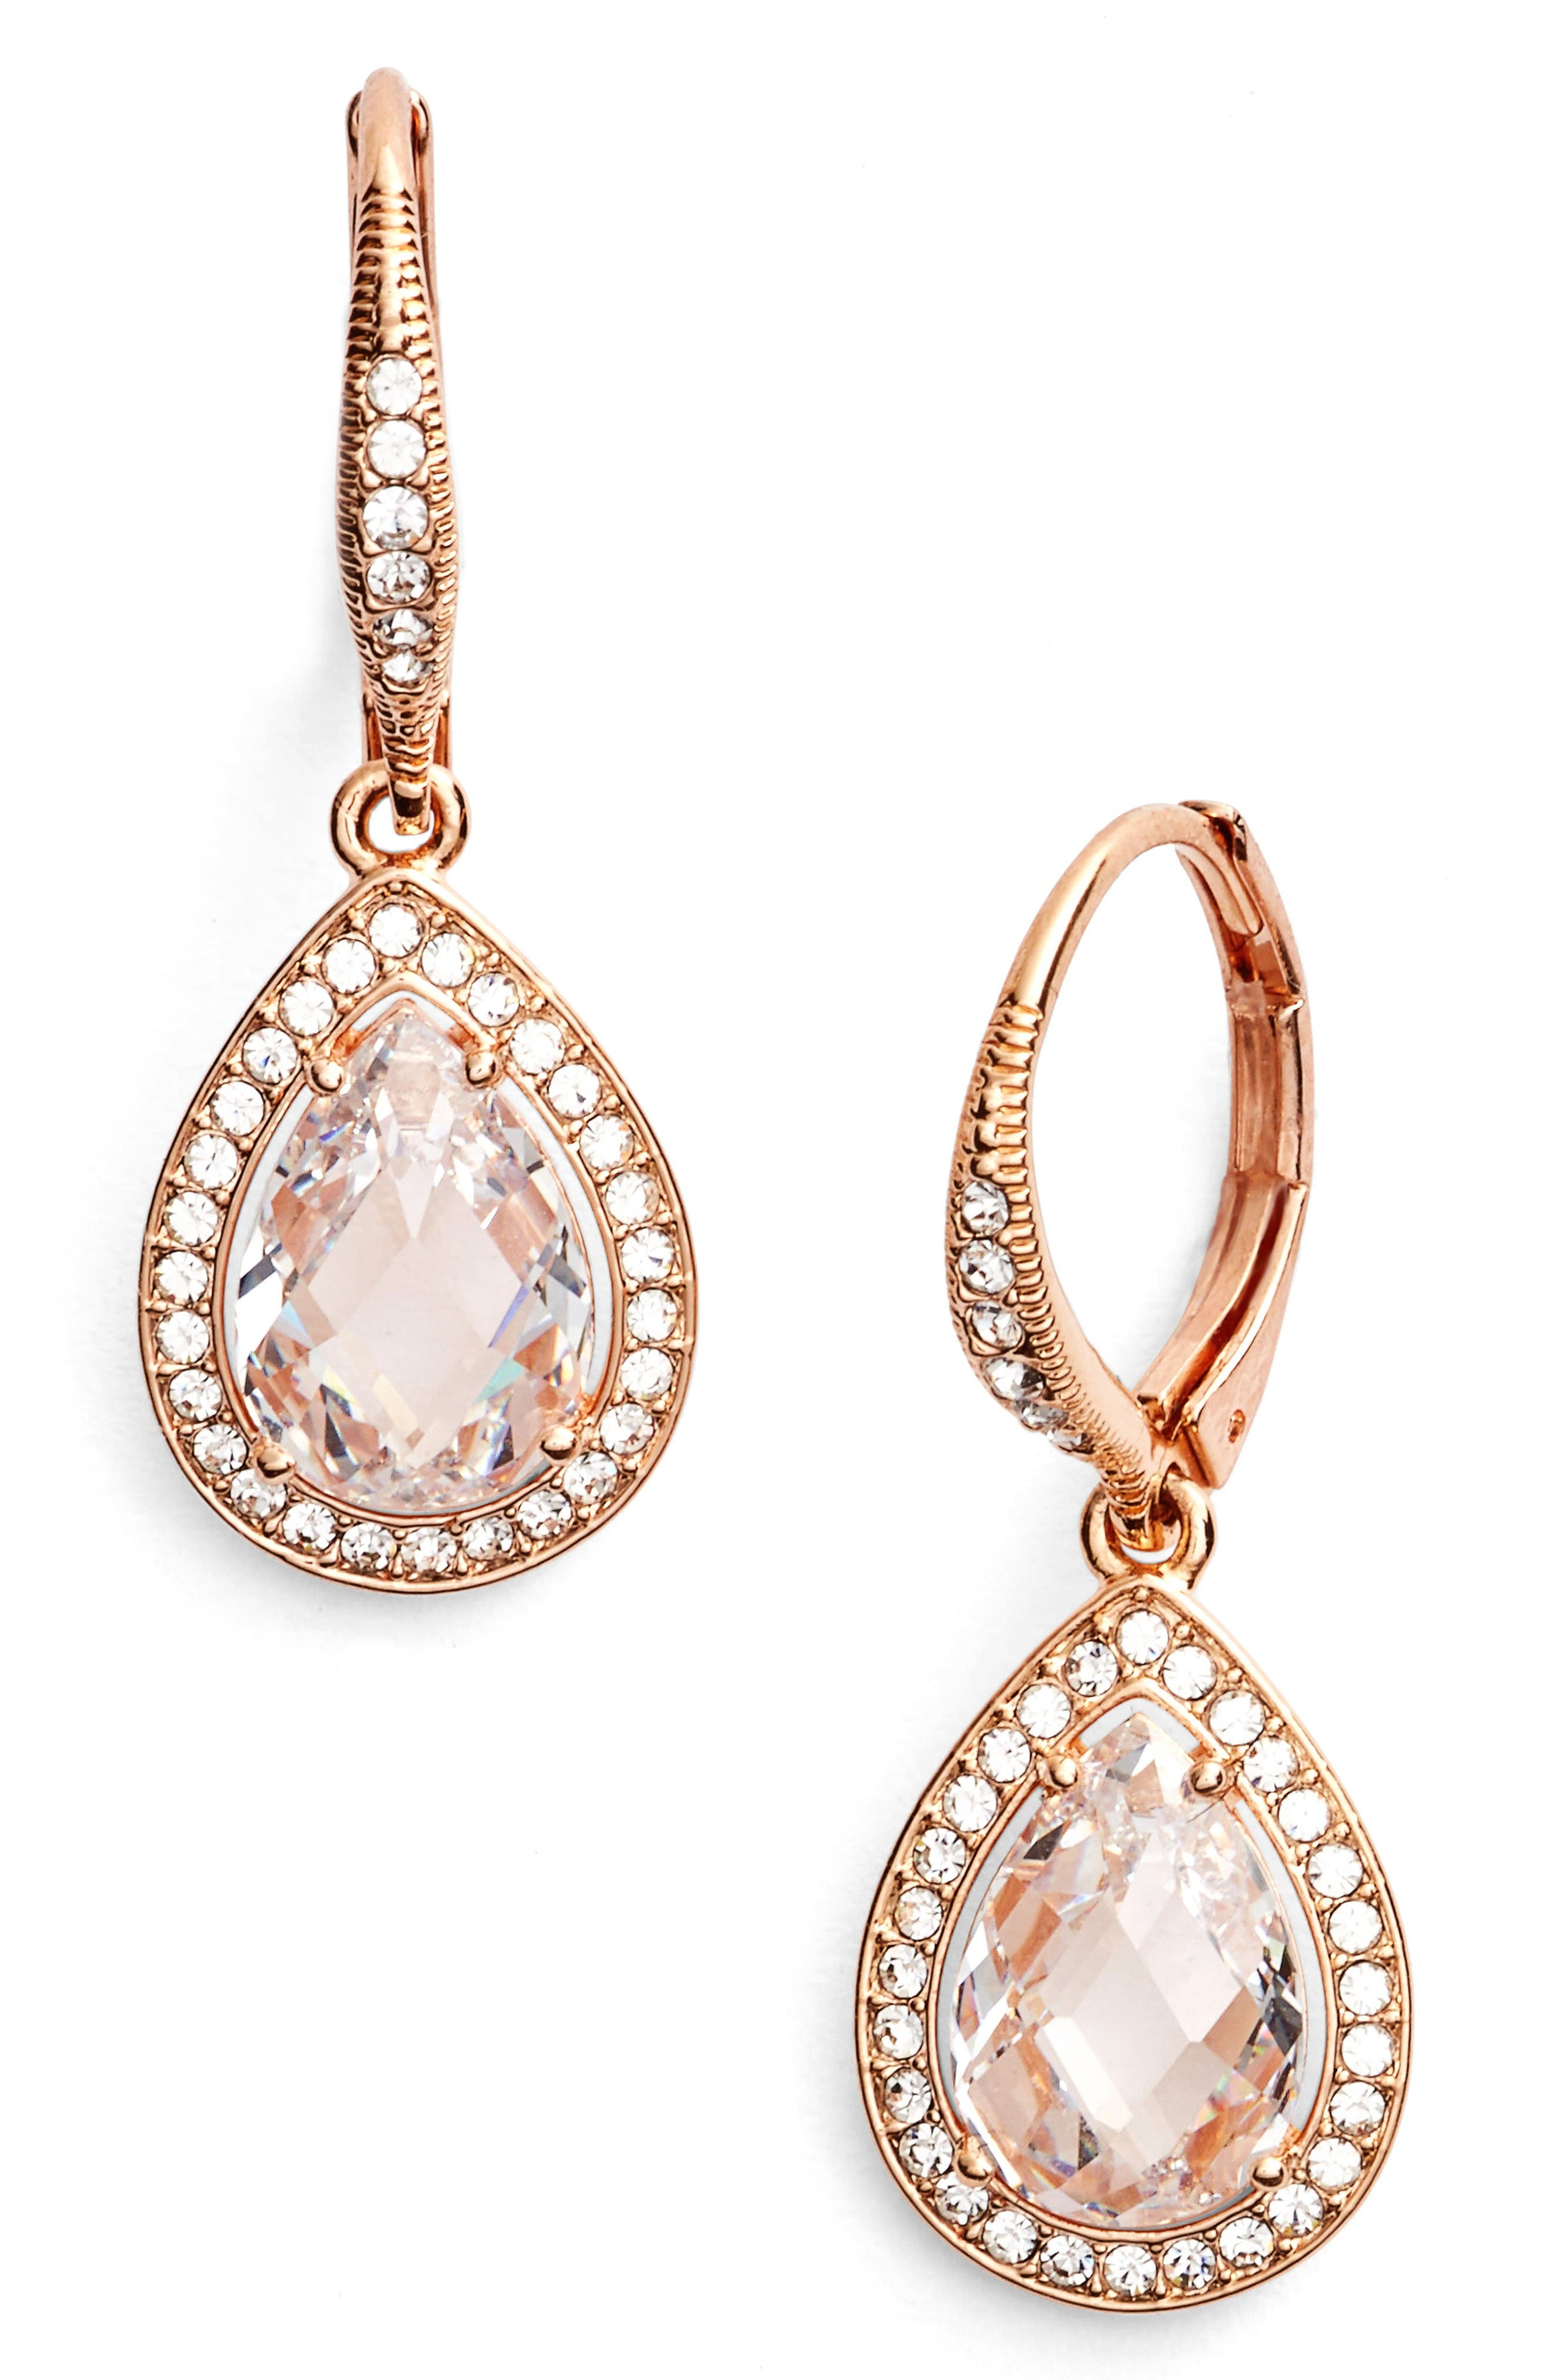 Alternate Image 1 Selected - Nadri Pear Drop Earrings (Nordstrom Exclusive)